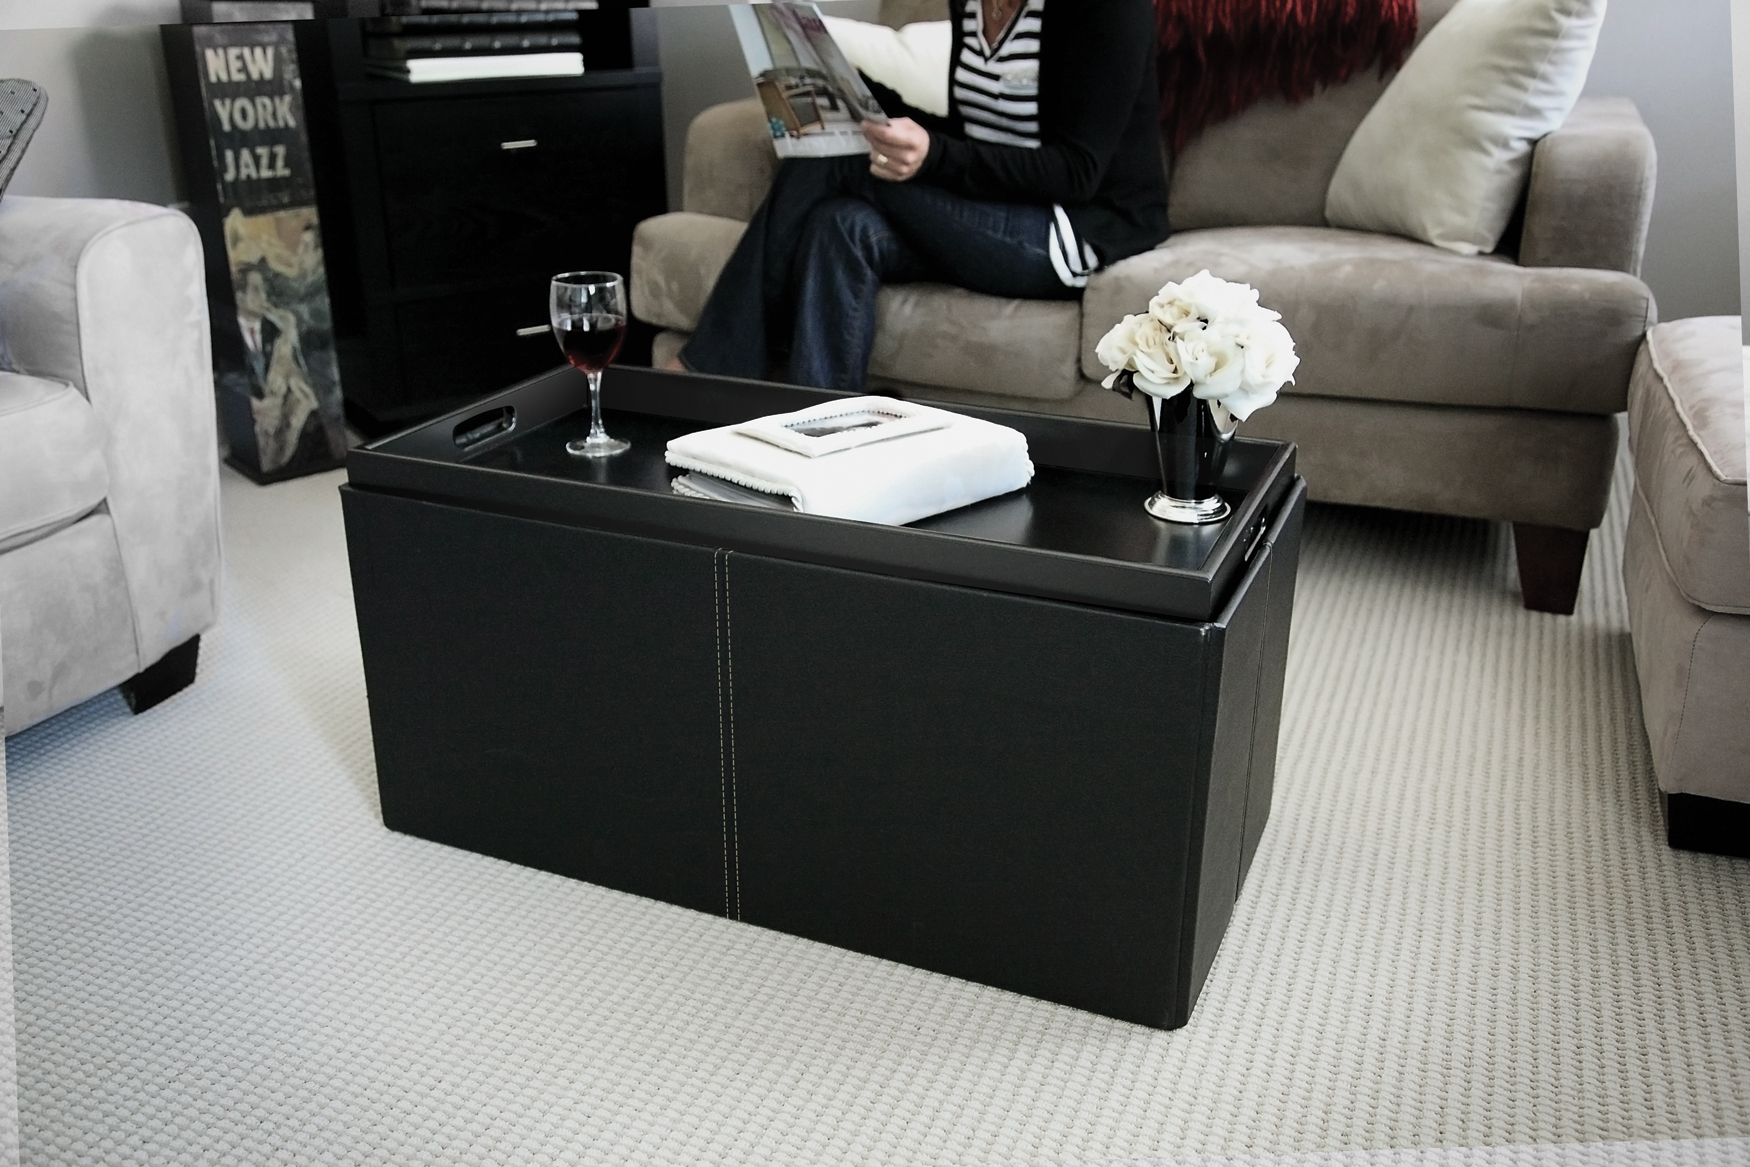 Phenomenal Fhe Unique And Affordable Home Decor Announces Global Alphanode Cool Chair Designs And Ideas Alphanodeonline